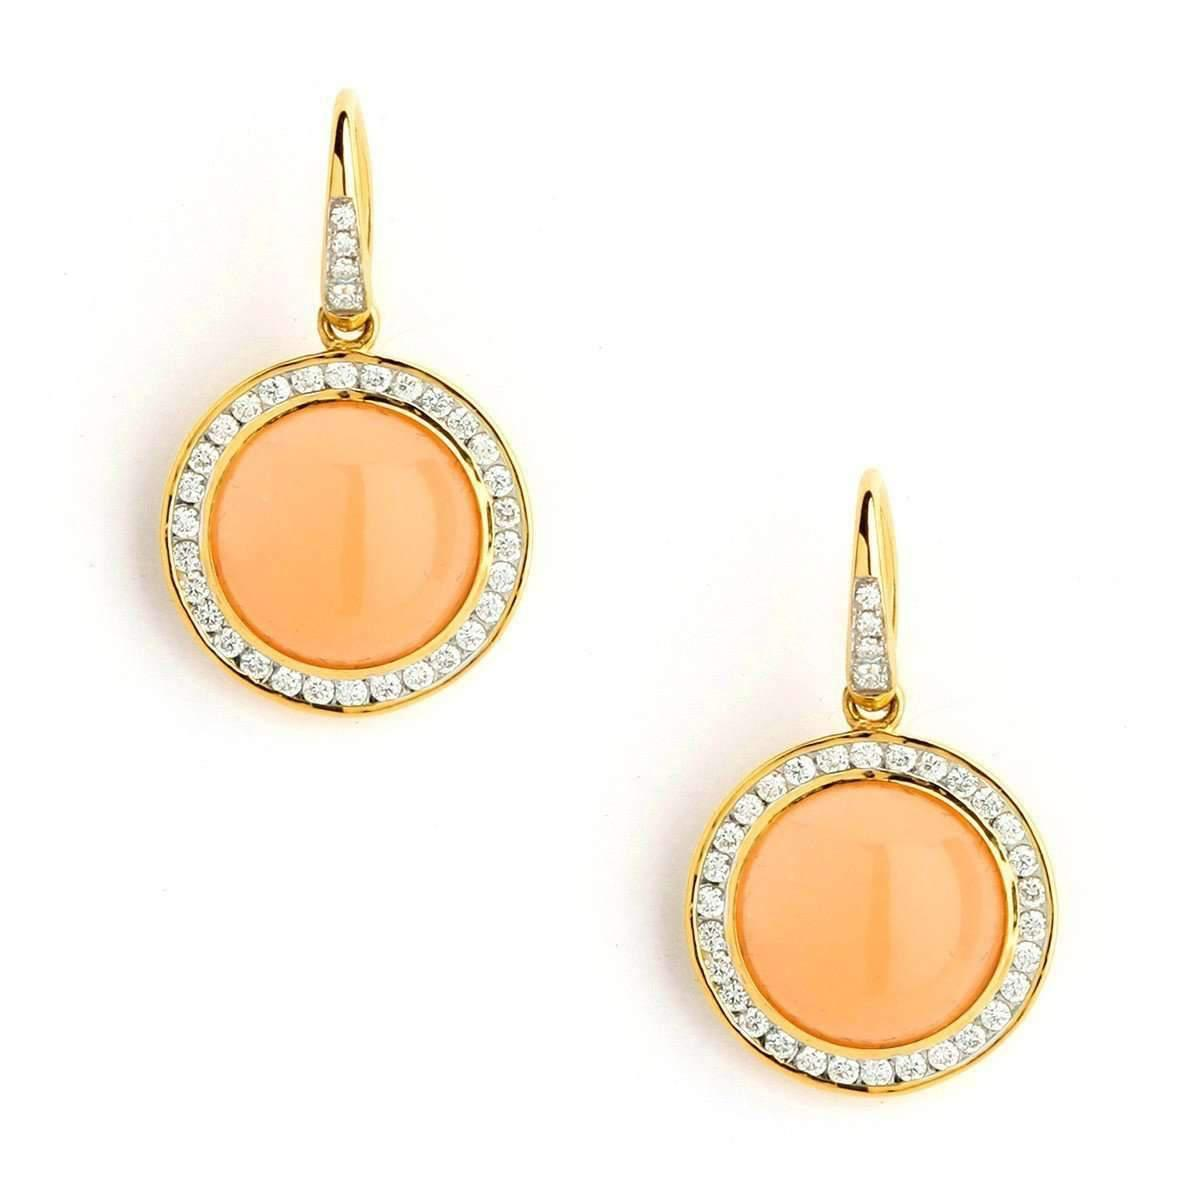 Syna 18kt Peach Moonstone Earrings With Diamonds